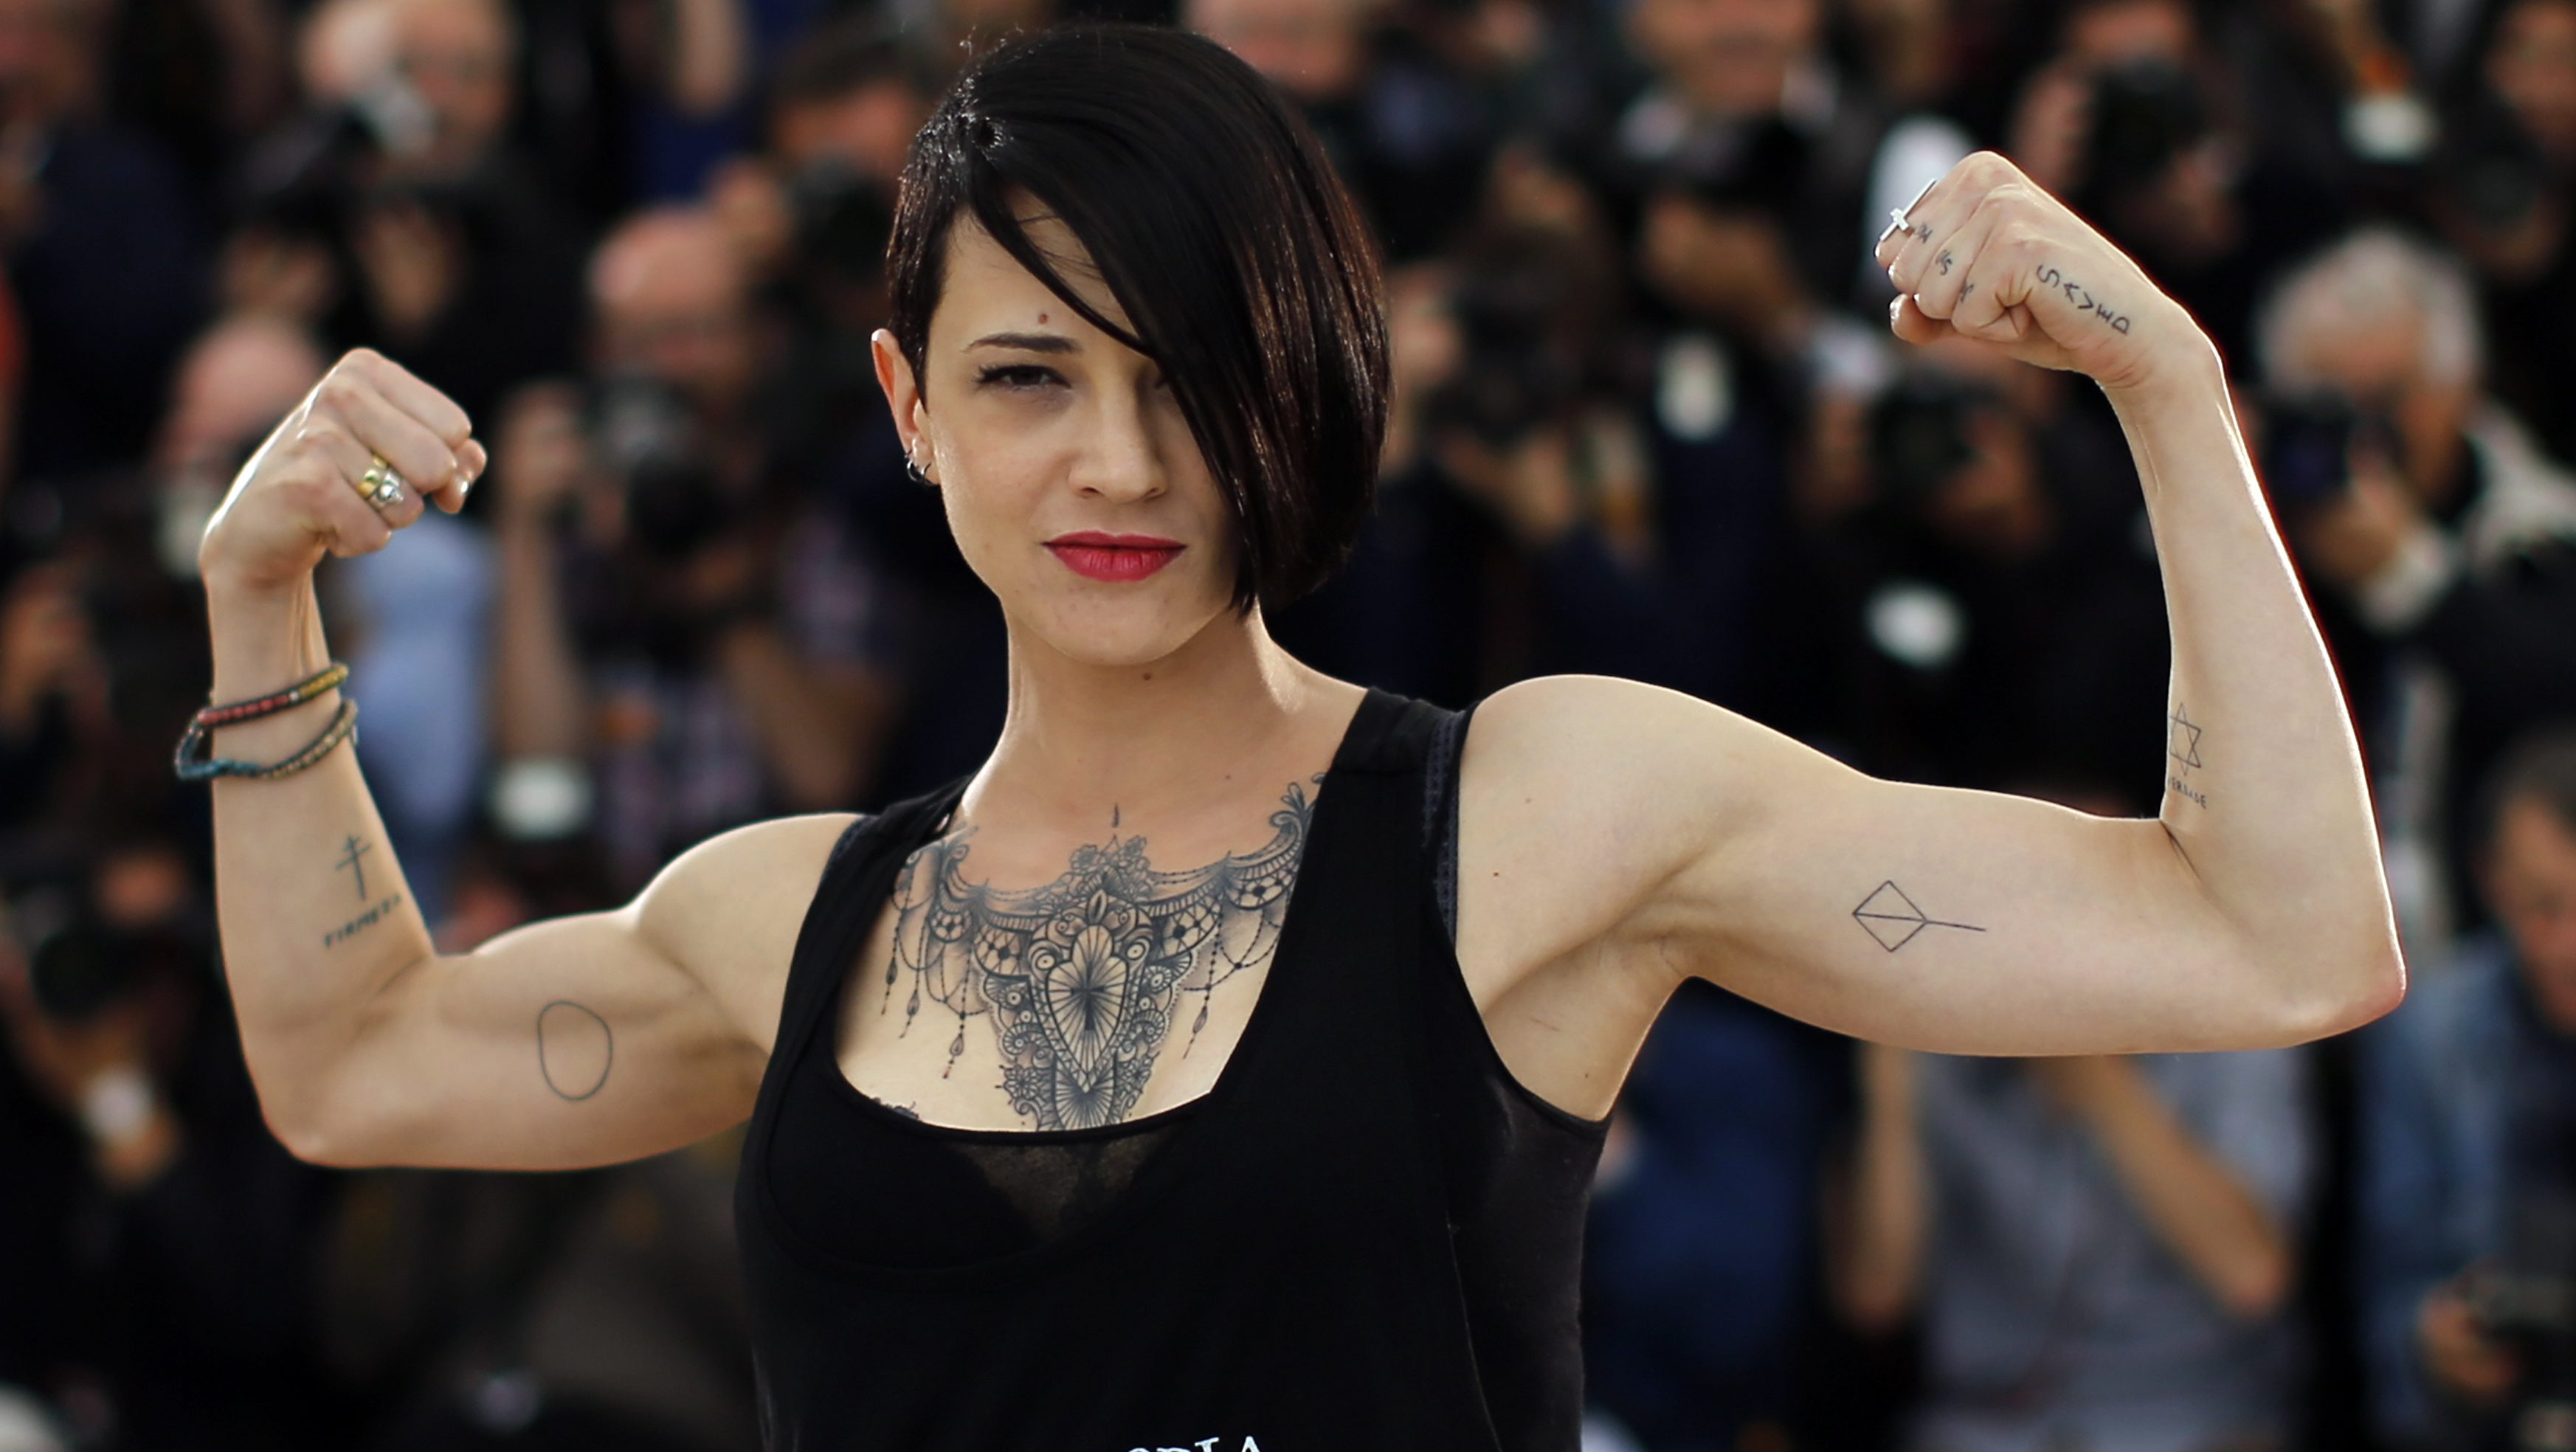 """Director Asia Argento poses during a photocall for the film """"Incompresa"""" (Misunderstood) in competition for the category """"Un Certain Regard"""" at the 67th Cannes Film Festival in Cannes May 22, 2014             REUTERS/Eric Gaillard (FRANCE  - Tags: ENTERTAINMENT)   - LR2EA5M0V0ZPV"""